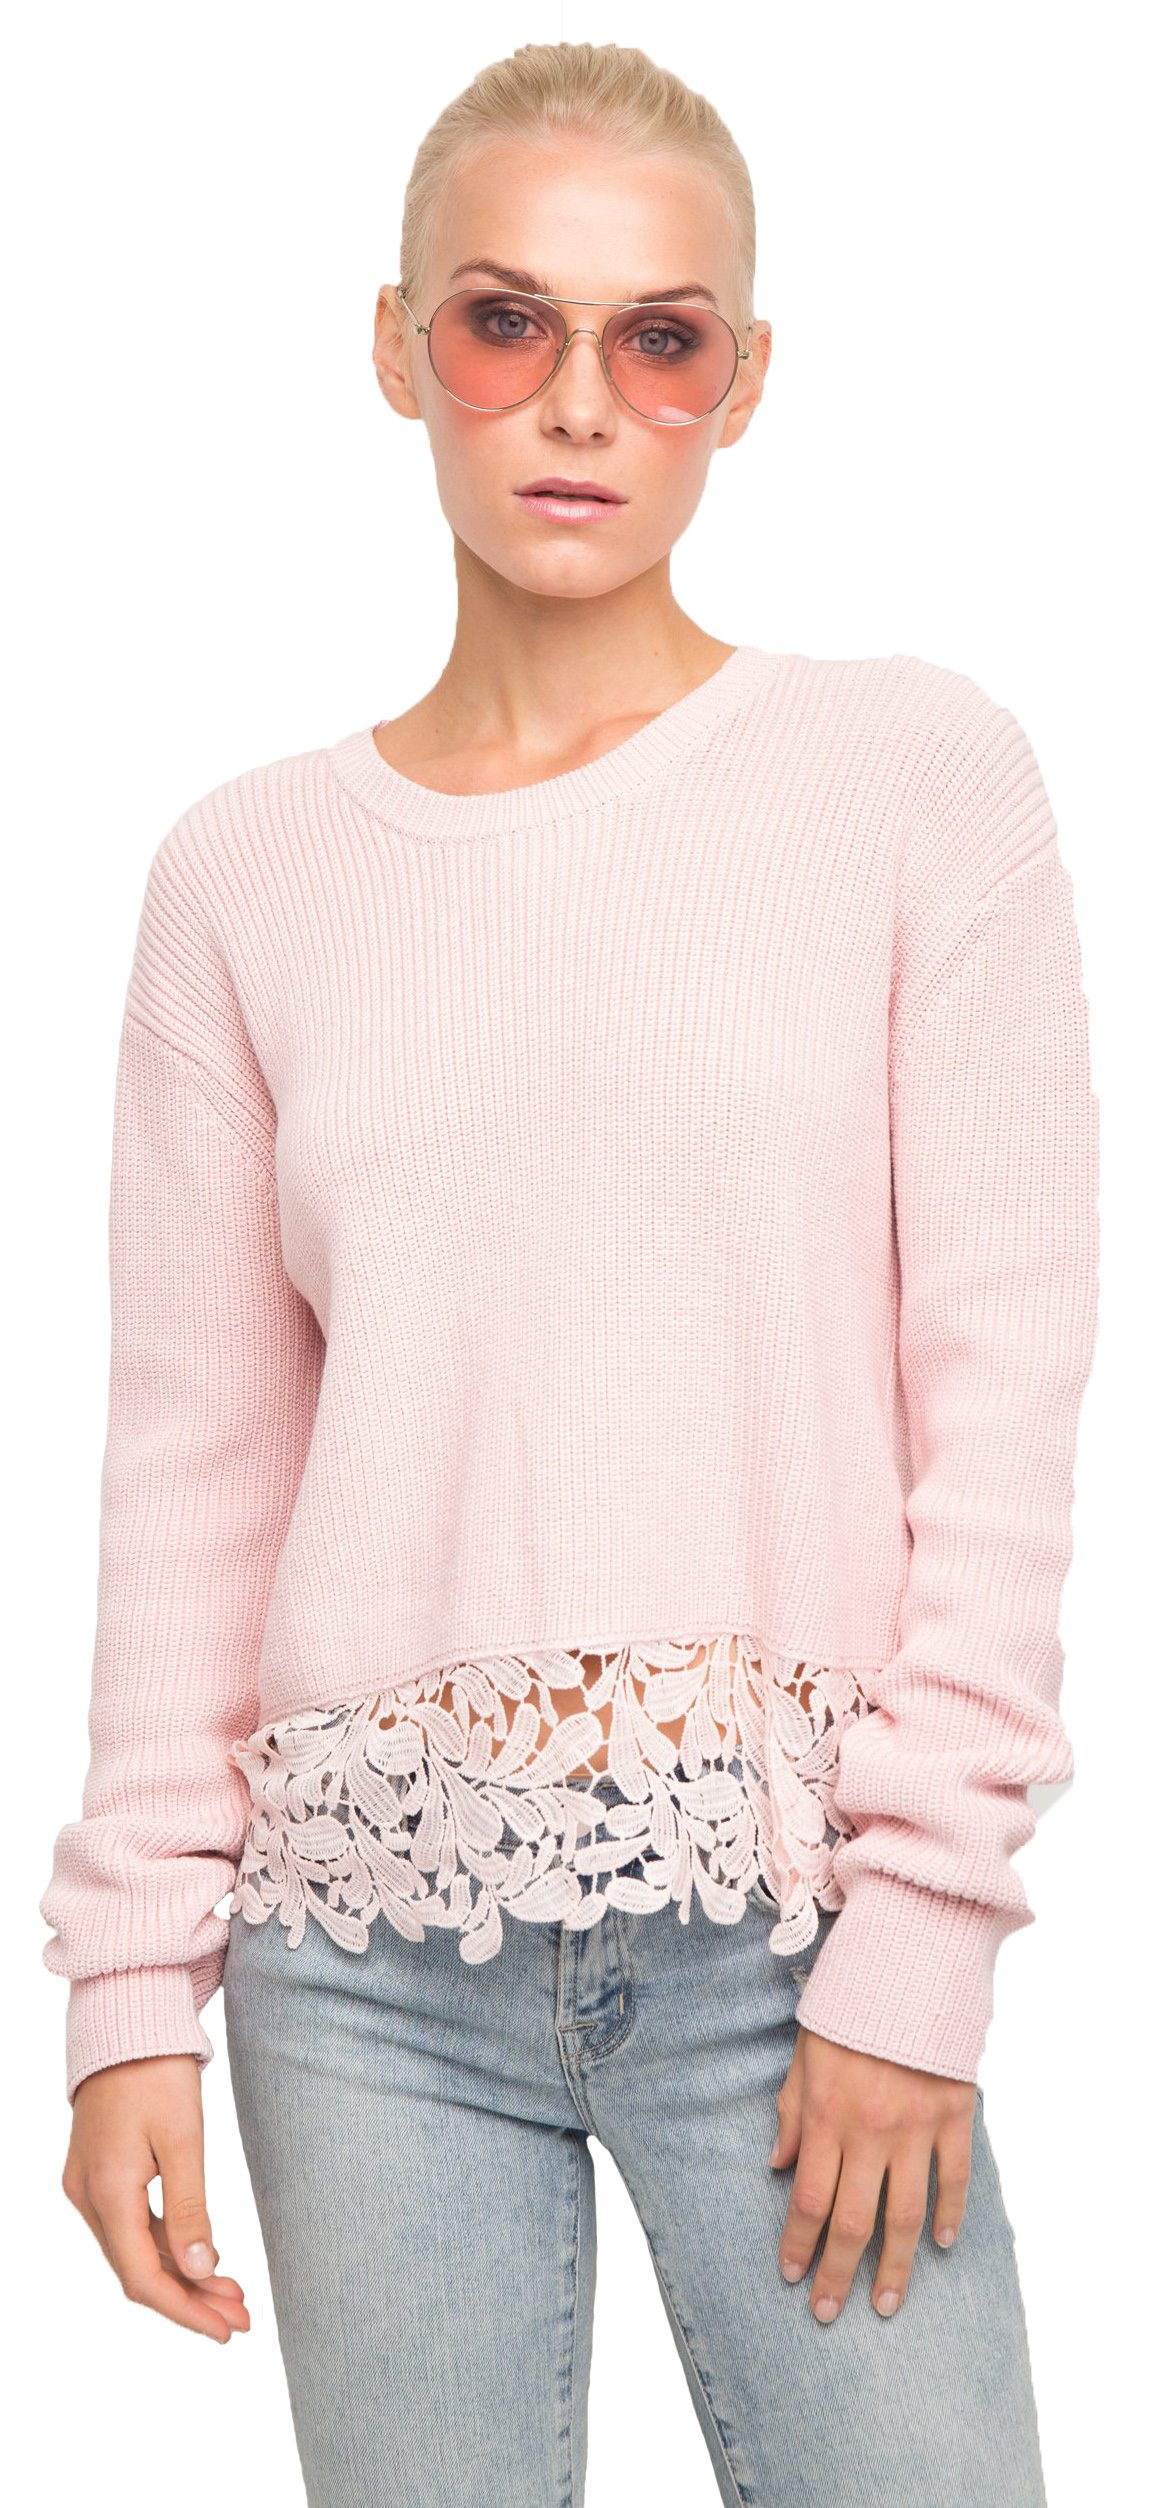 Generation Love Felix Sweater In Washed Pink, XS